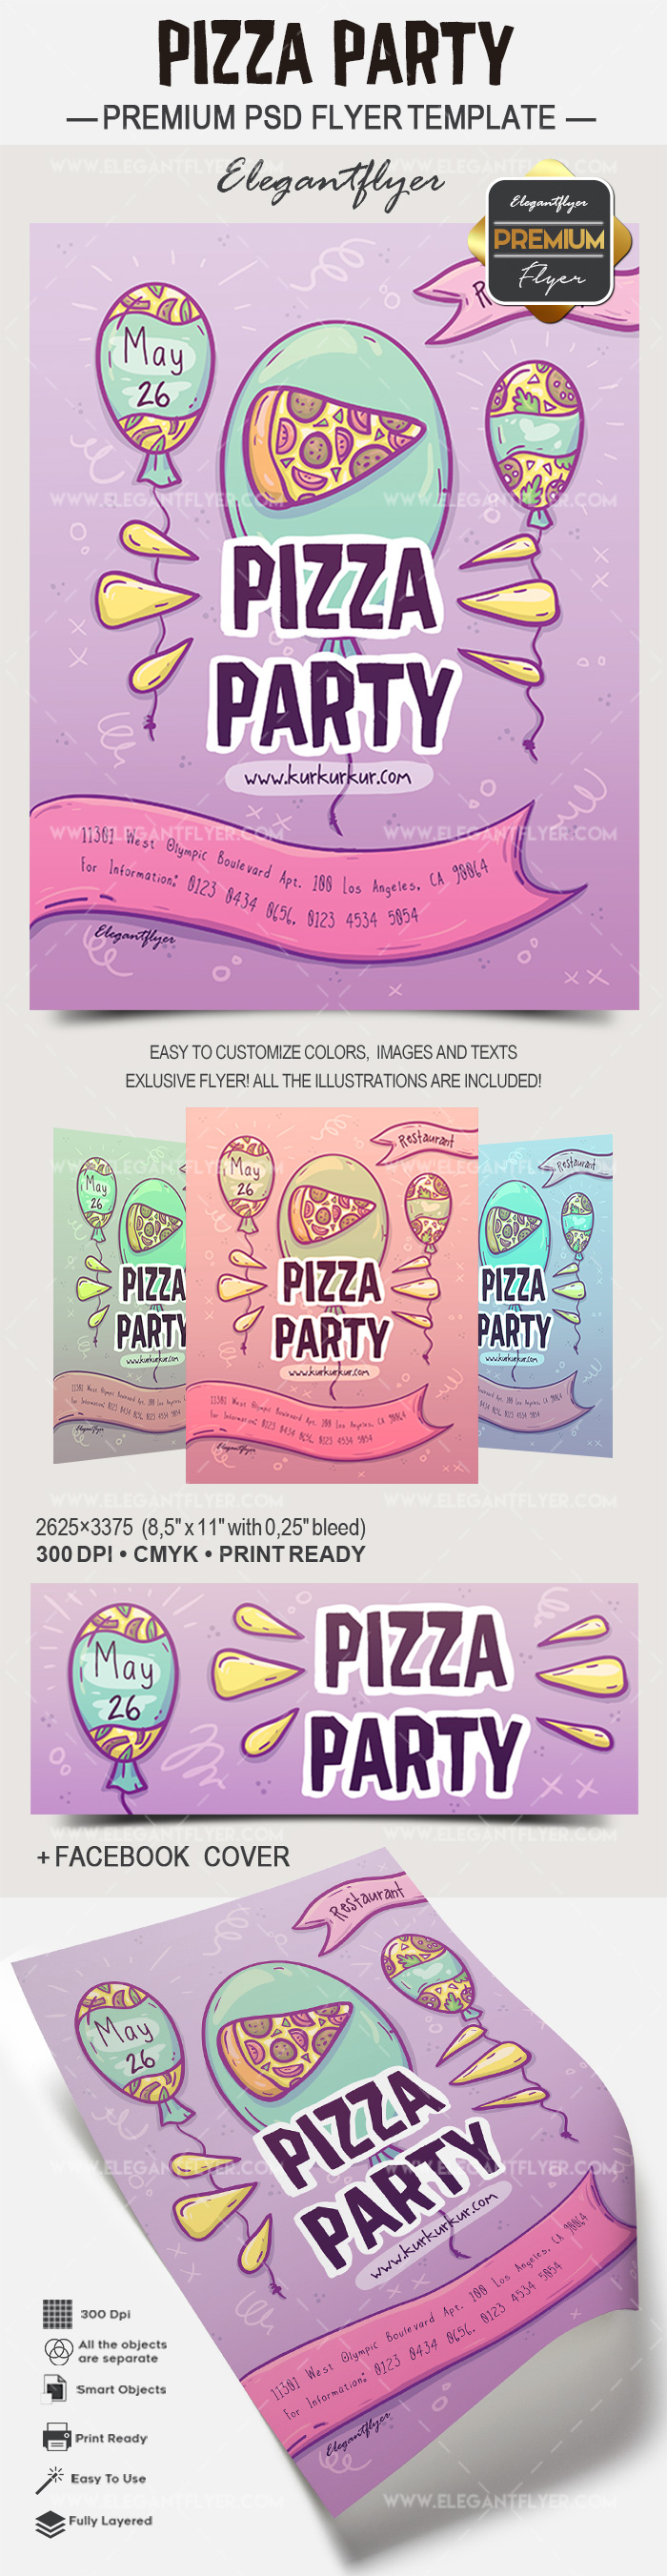 Poster for Pizza Party